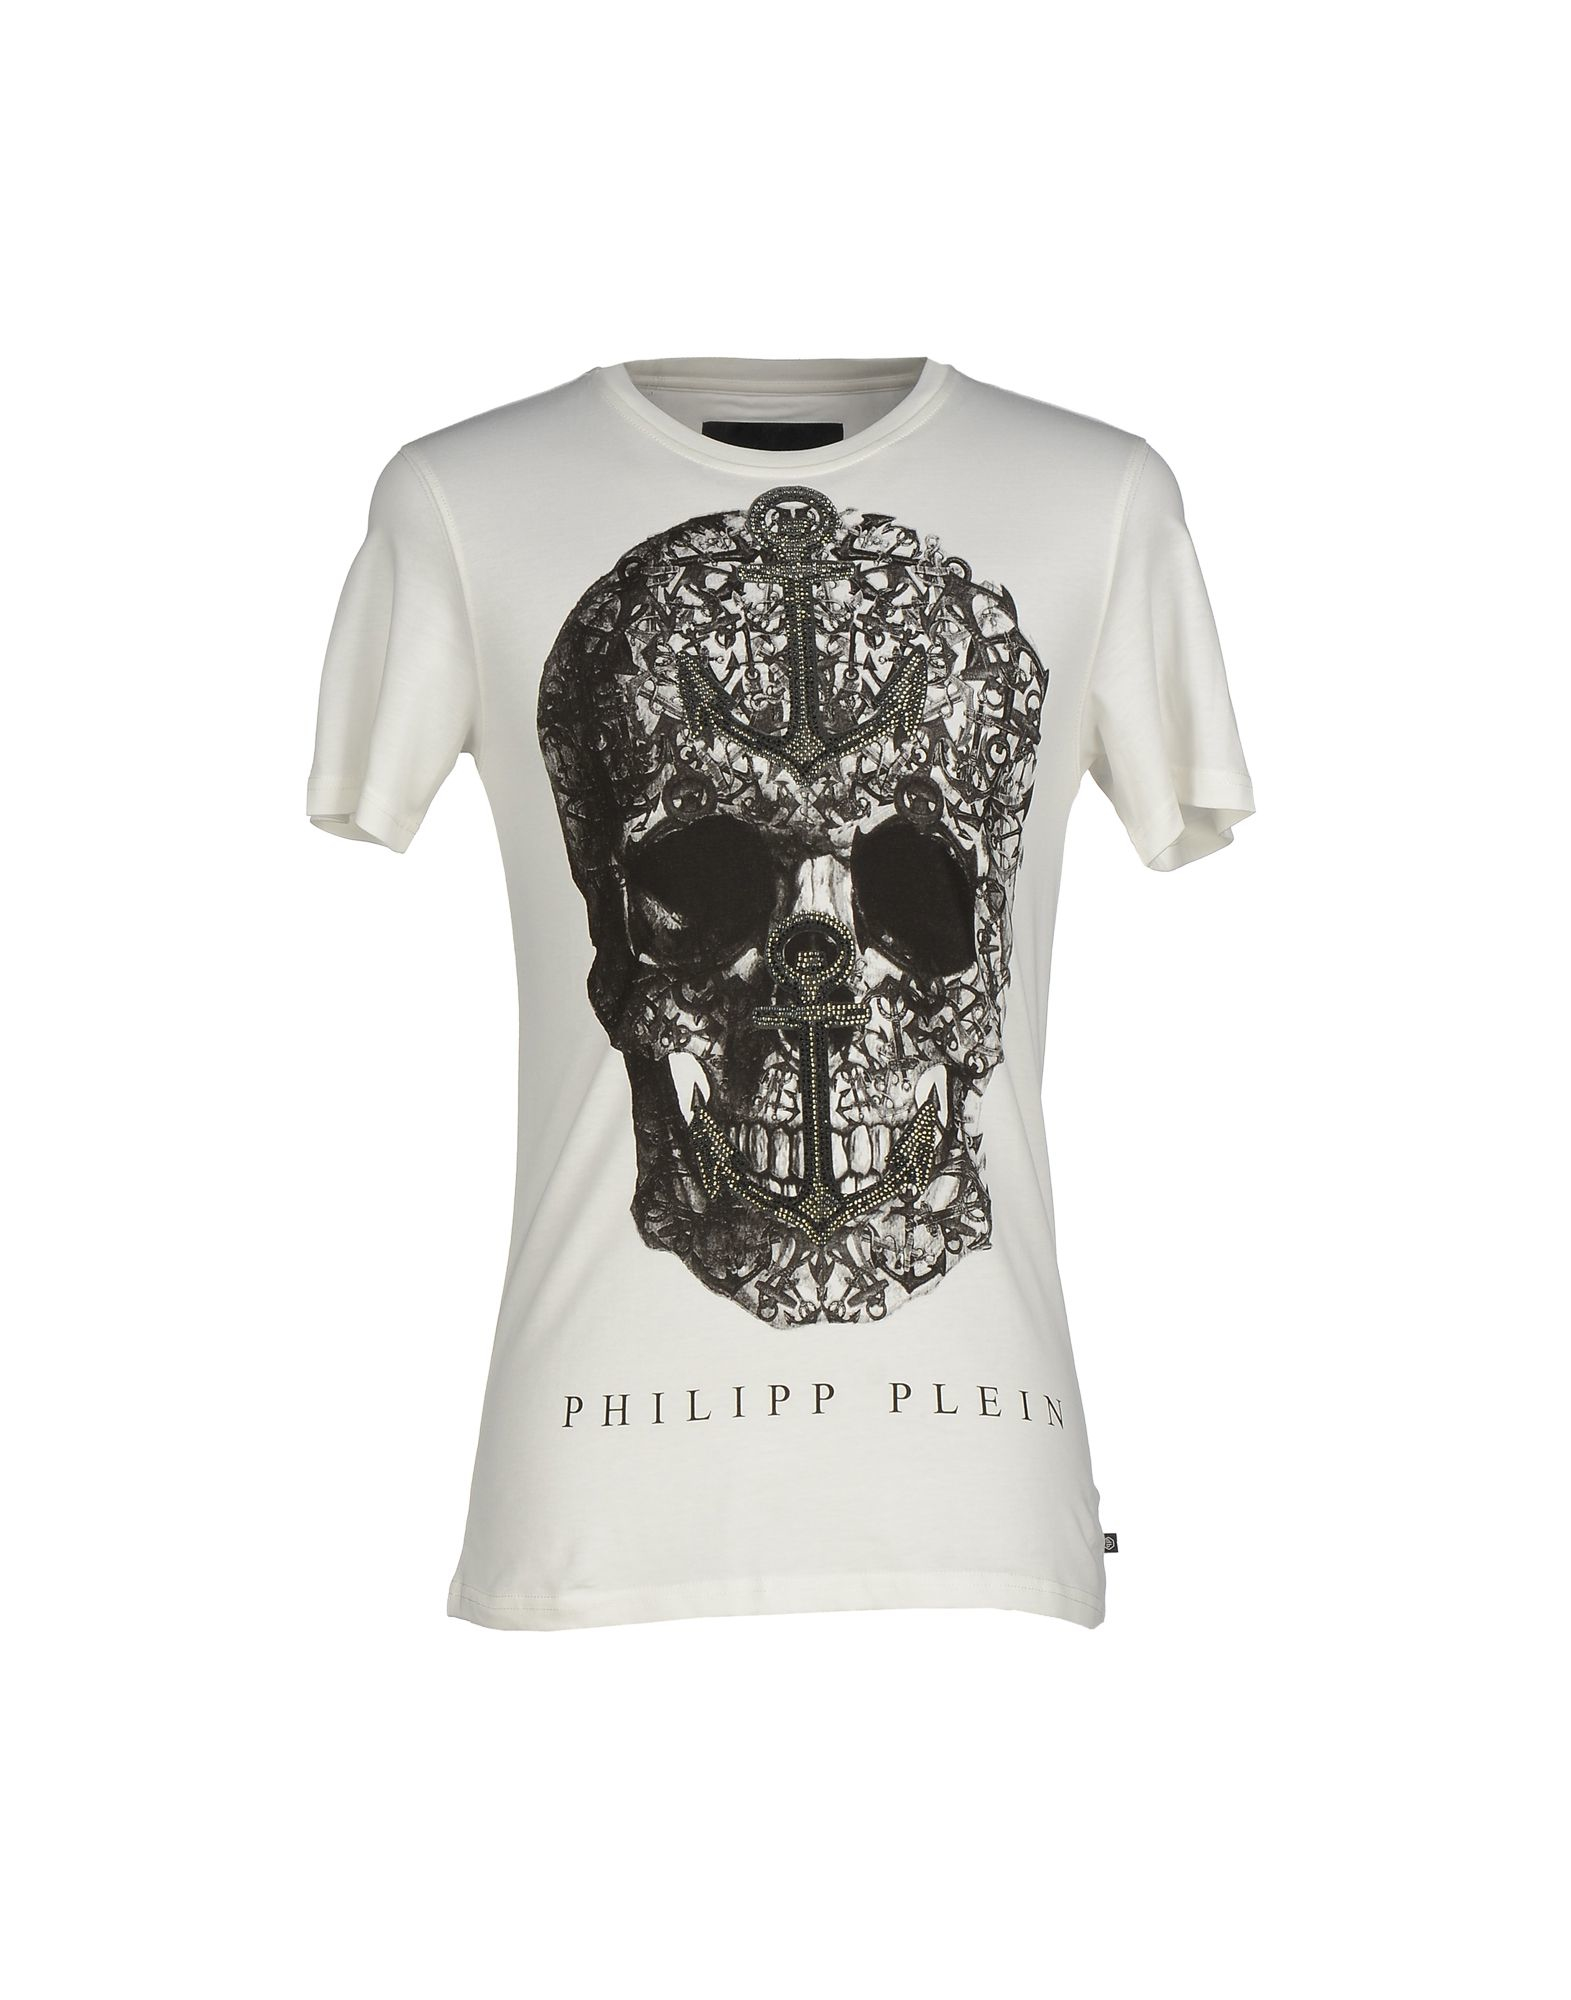 lyst philipp plein t shirt in white for men. Black Bedroom Furniture Sets. Home Design Ideas